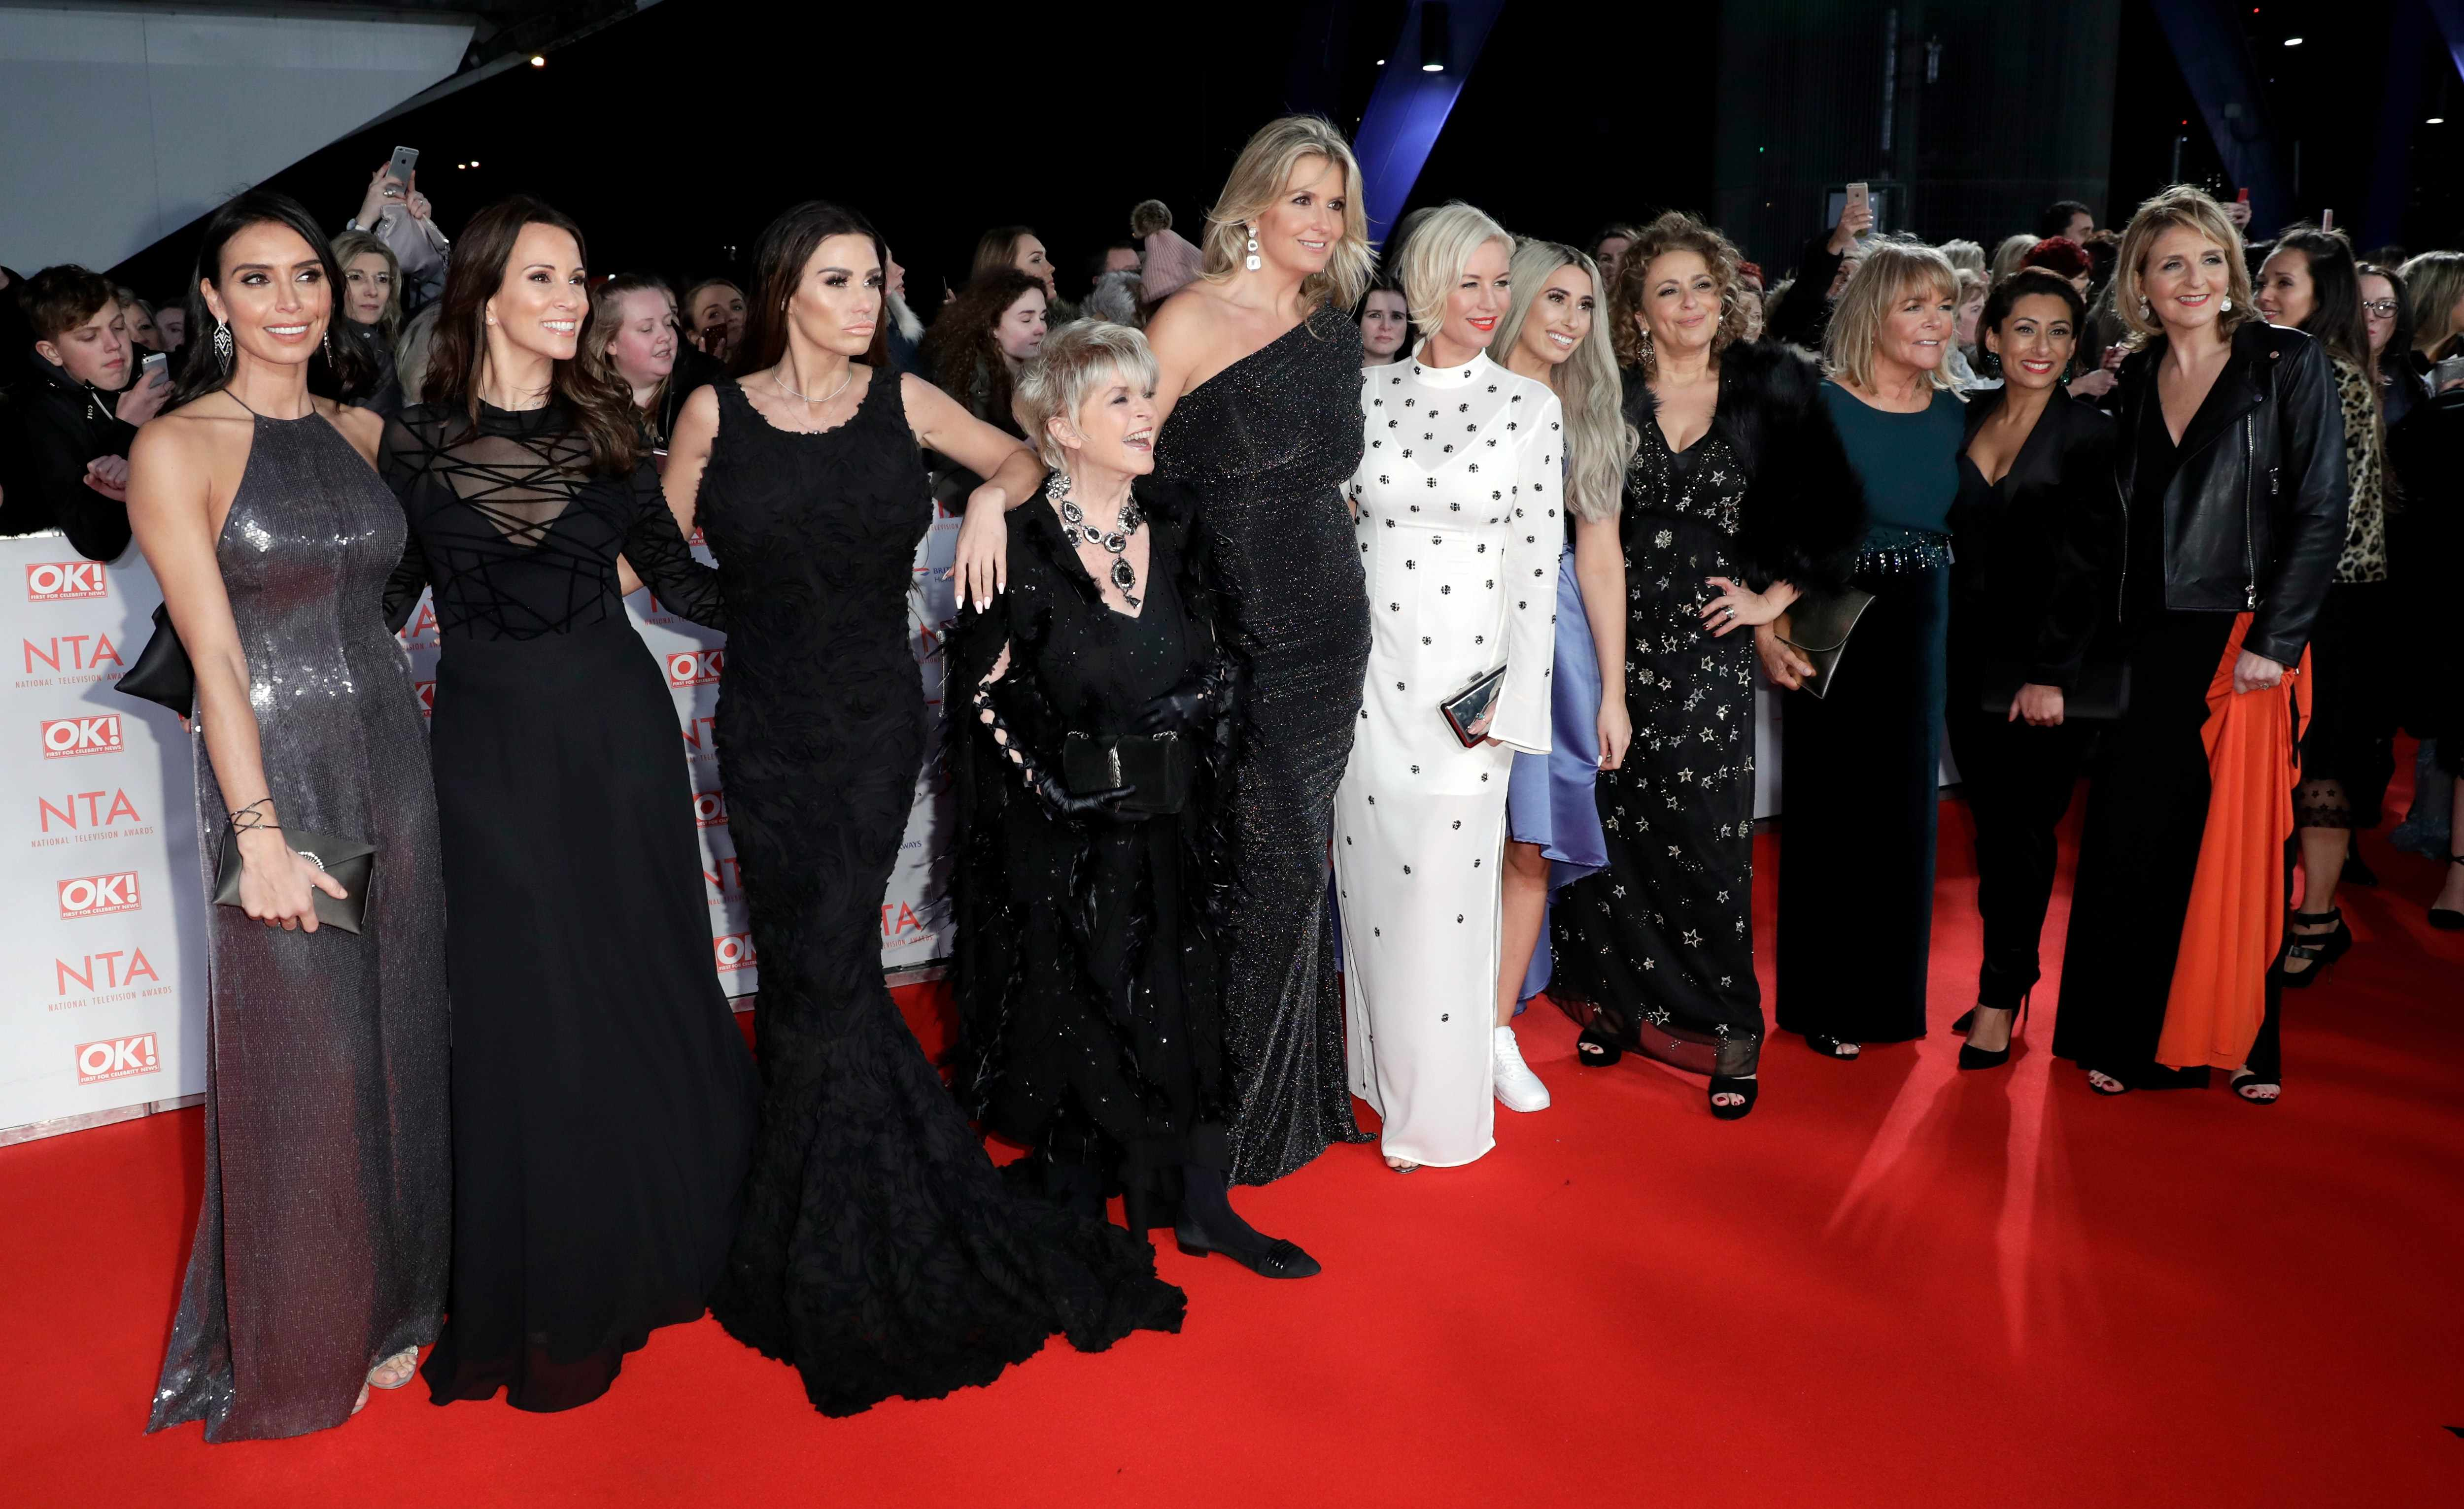 LONDON, ENGLAND - JANUARY 23:  (L-R) Christine Lampard, Andrea McLean, Katie Price, Gloria Hunniford, Penny Lancaster, Denise van Outen, Stacey Soloman, Nadia Sawalha, Linda Robson, guest and Kaye Adams attend the National Television Awards 2018 at the O2 Arena on January 23, 2018 in London, England.  (Photo by John Phillips/Getty Images)